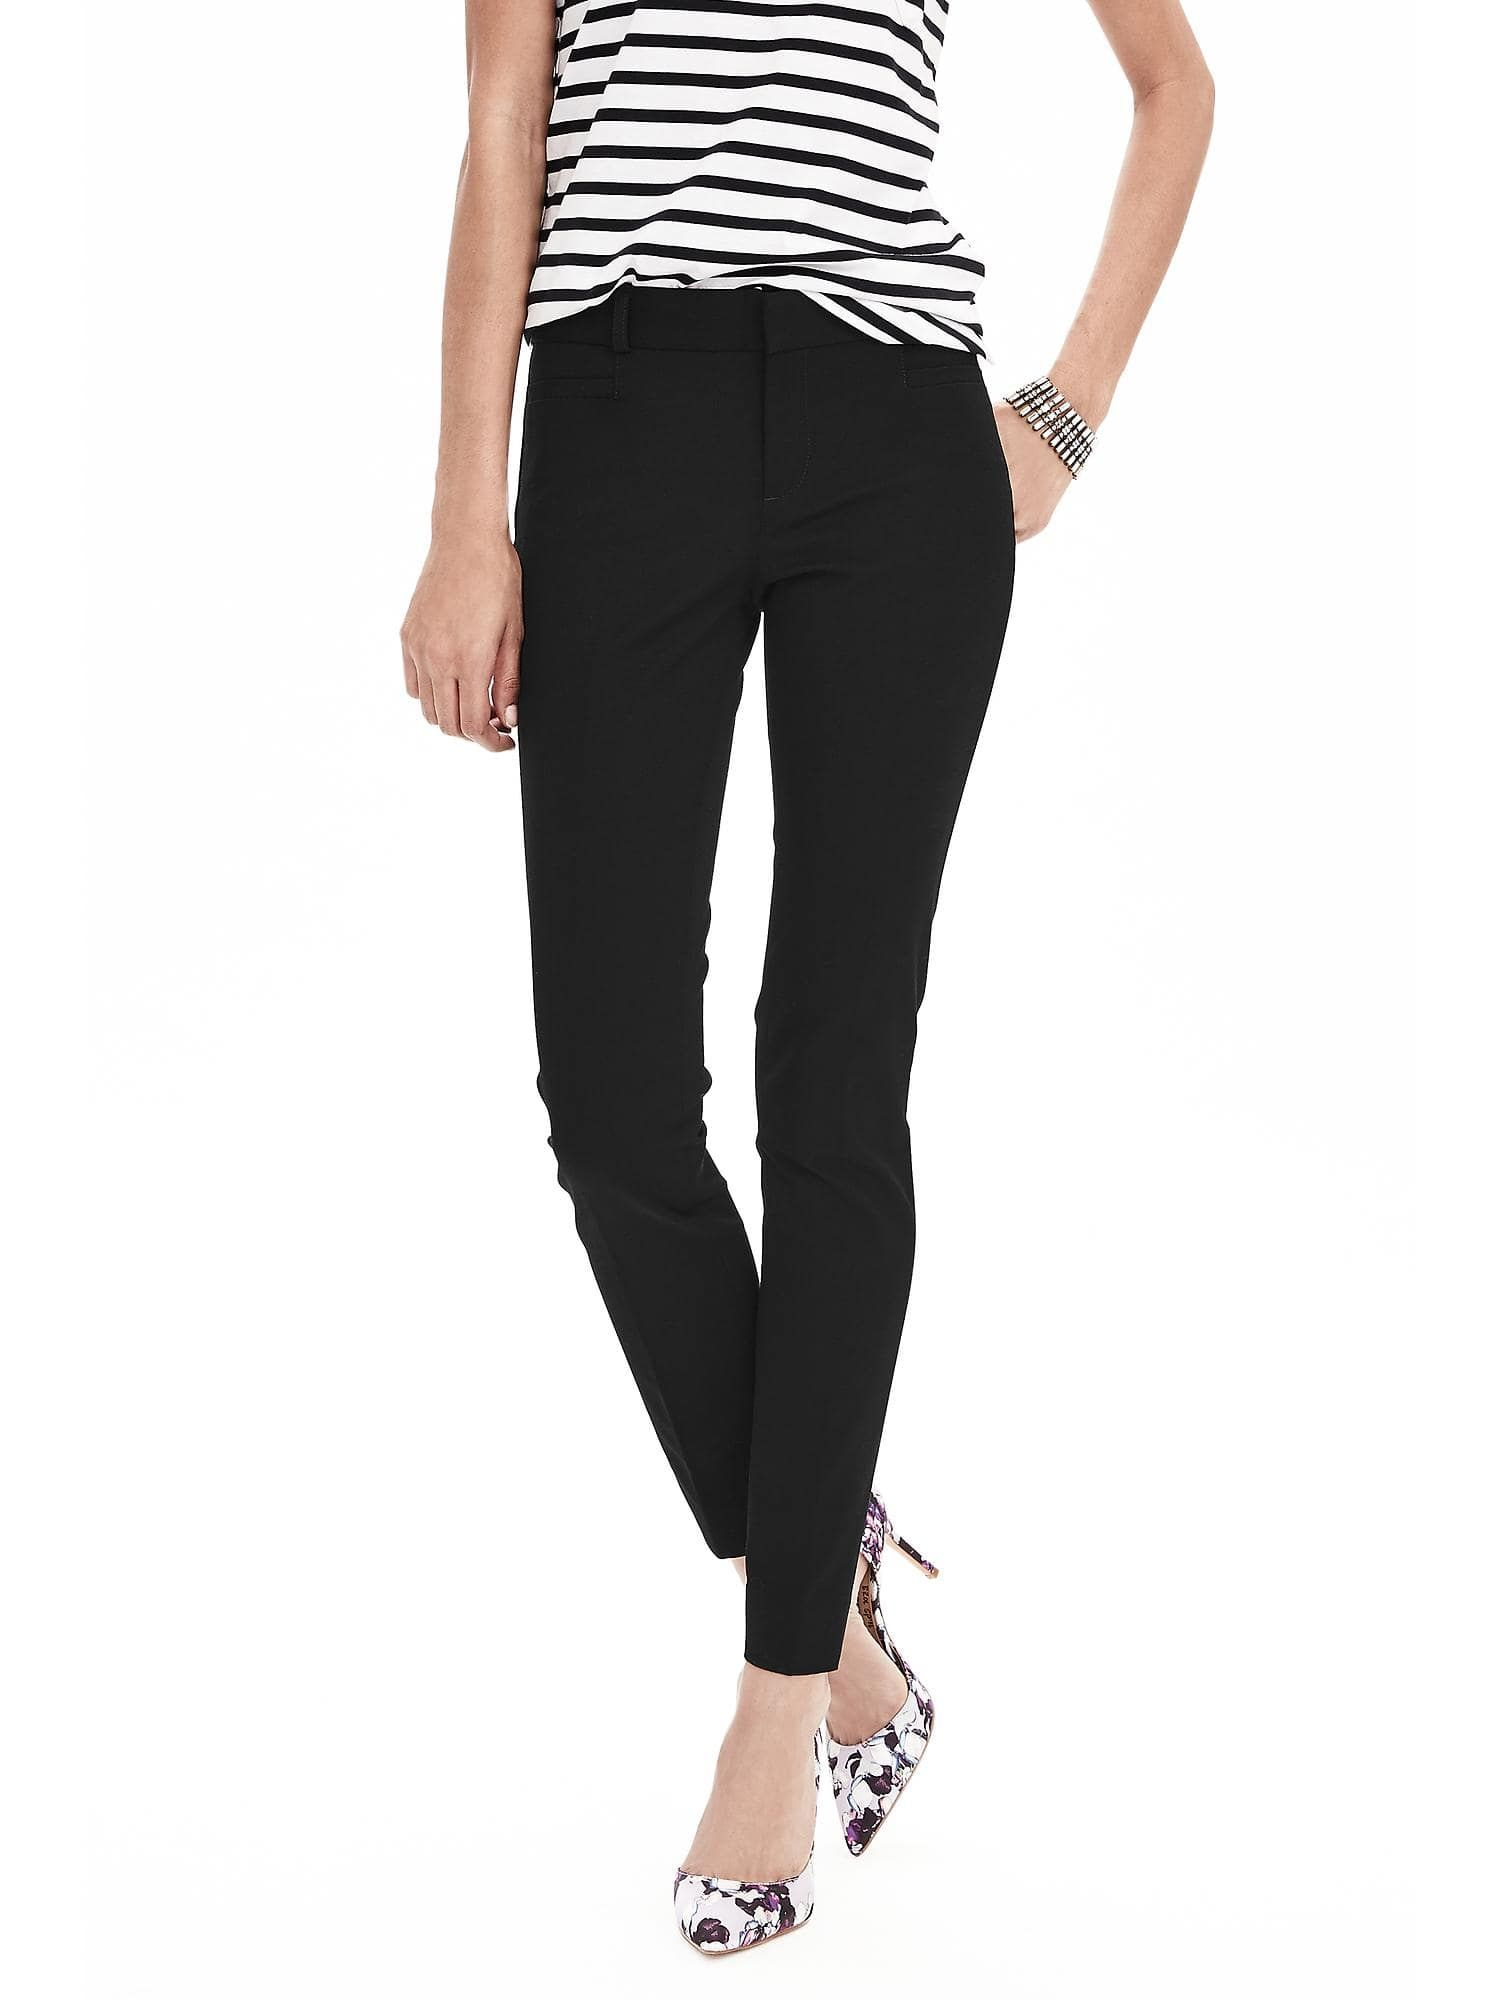 c072305181c3b Sloan Skinny-Fit Pant | Sloan pants outfits | Ankle length pants ...